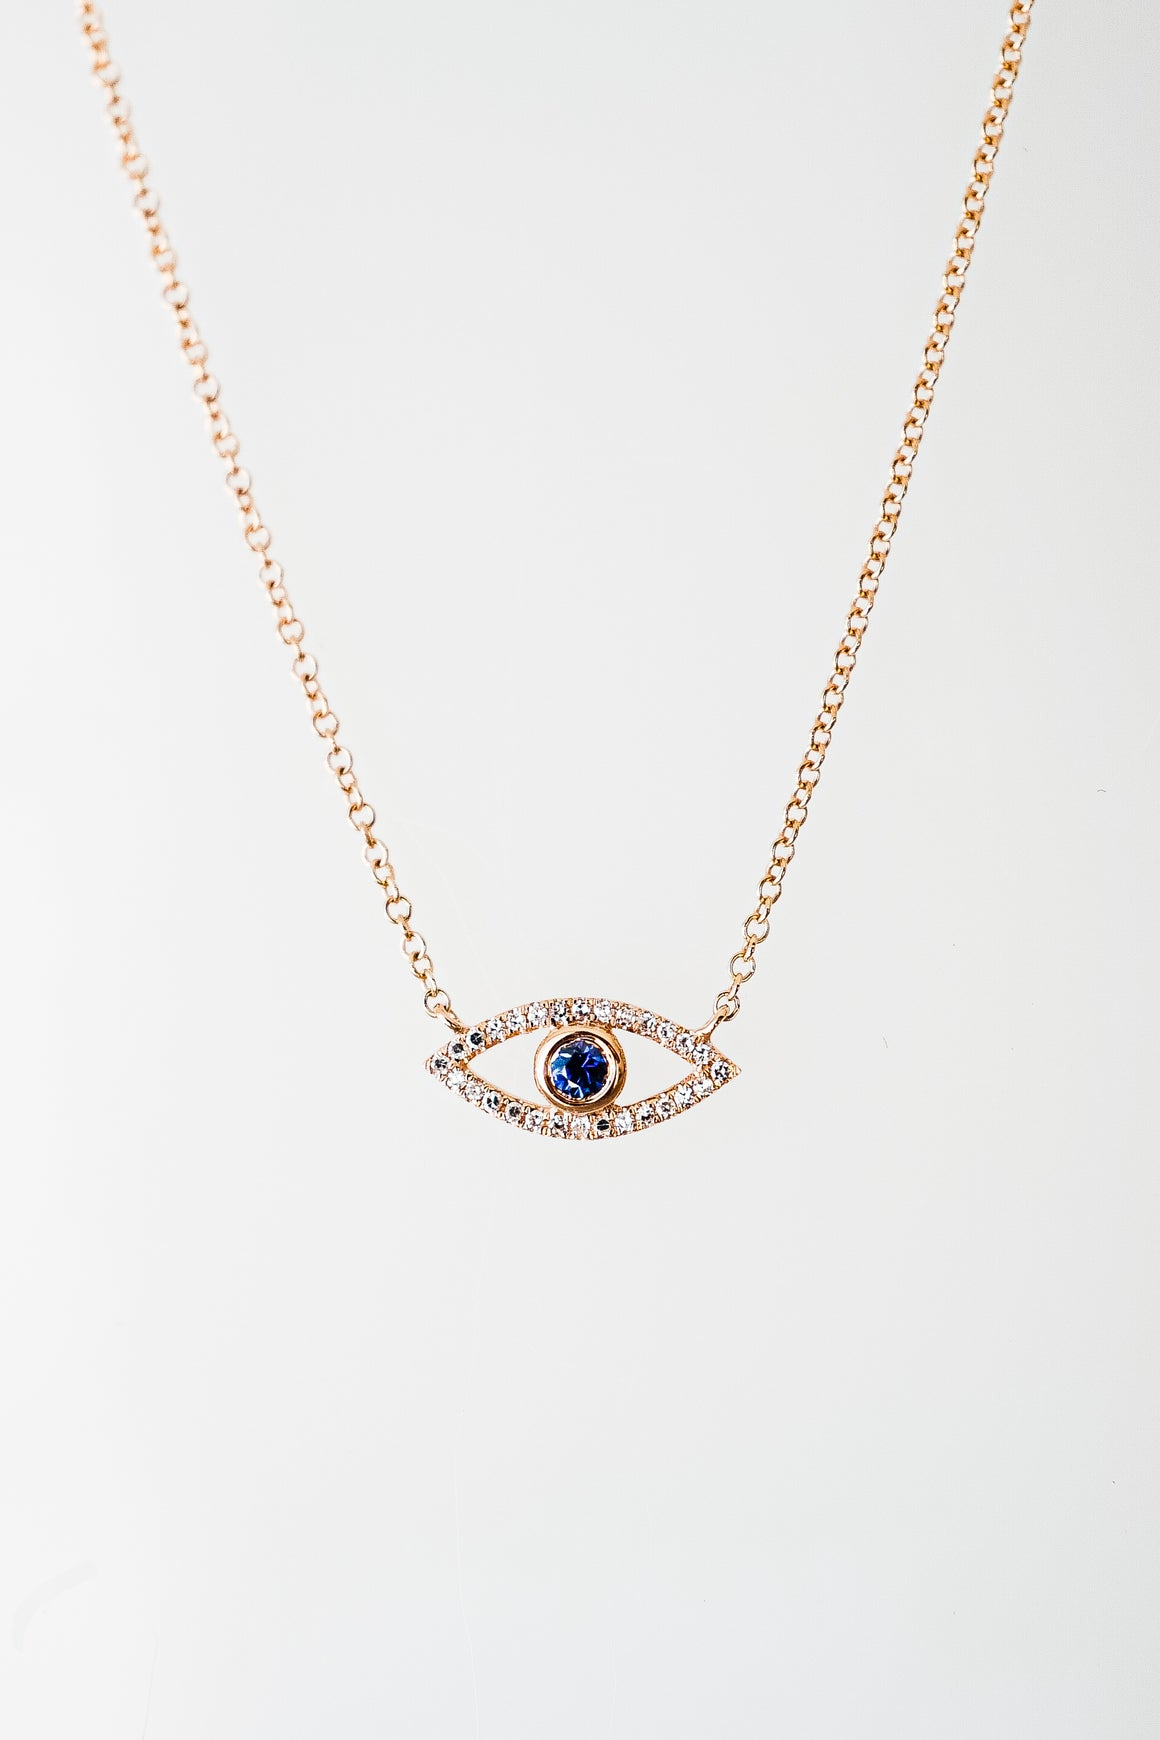 Eye See You Necklace - Embody Los Angeles